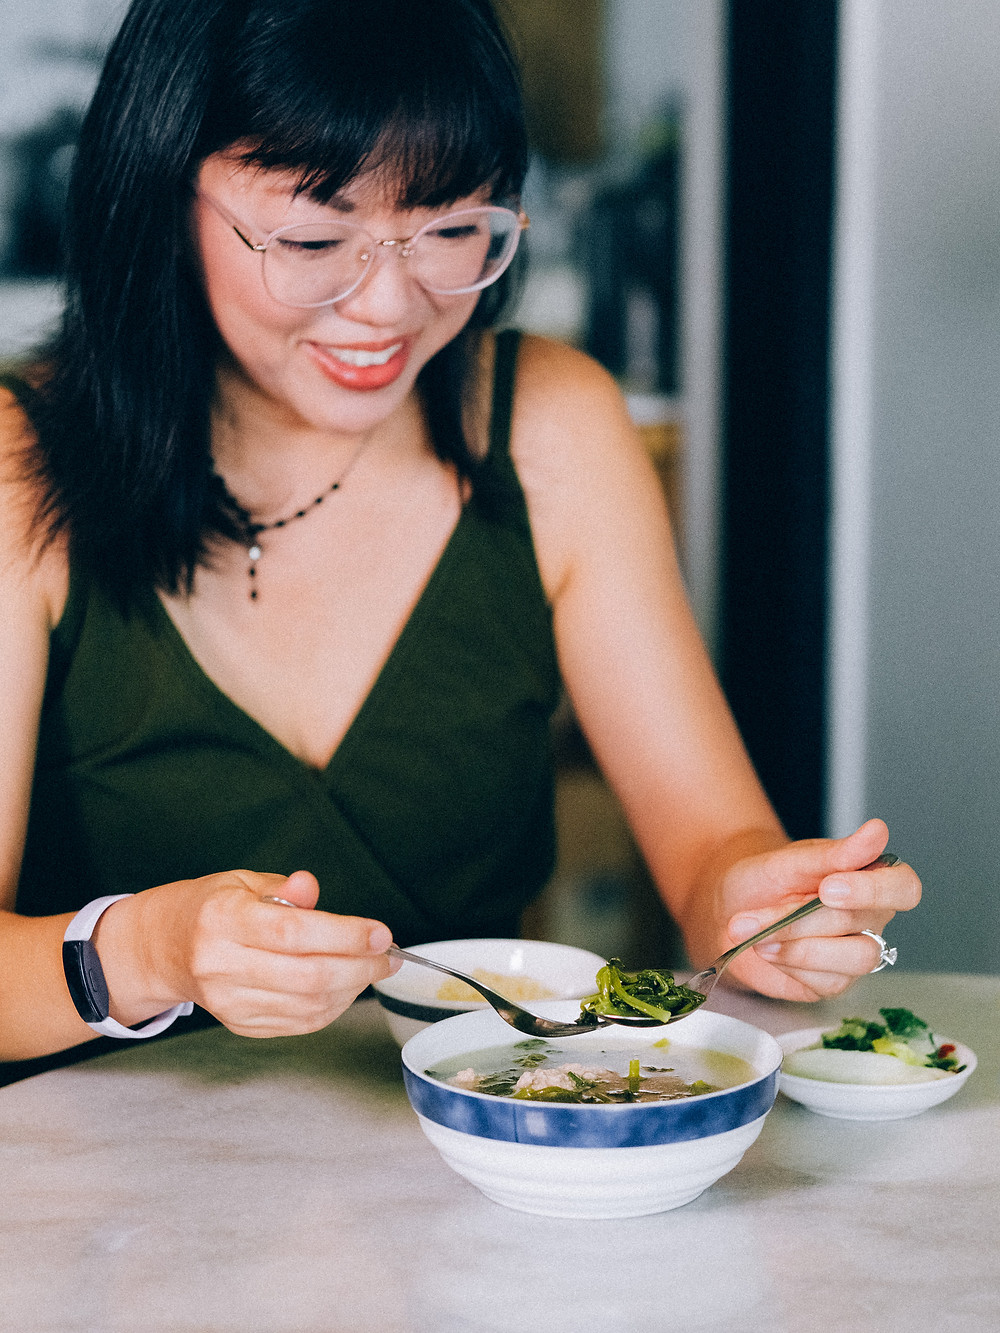 Julia Guo with her home cooked dishes, following the AIP diet